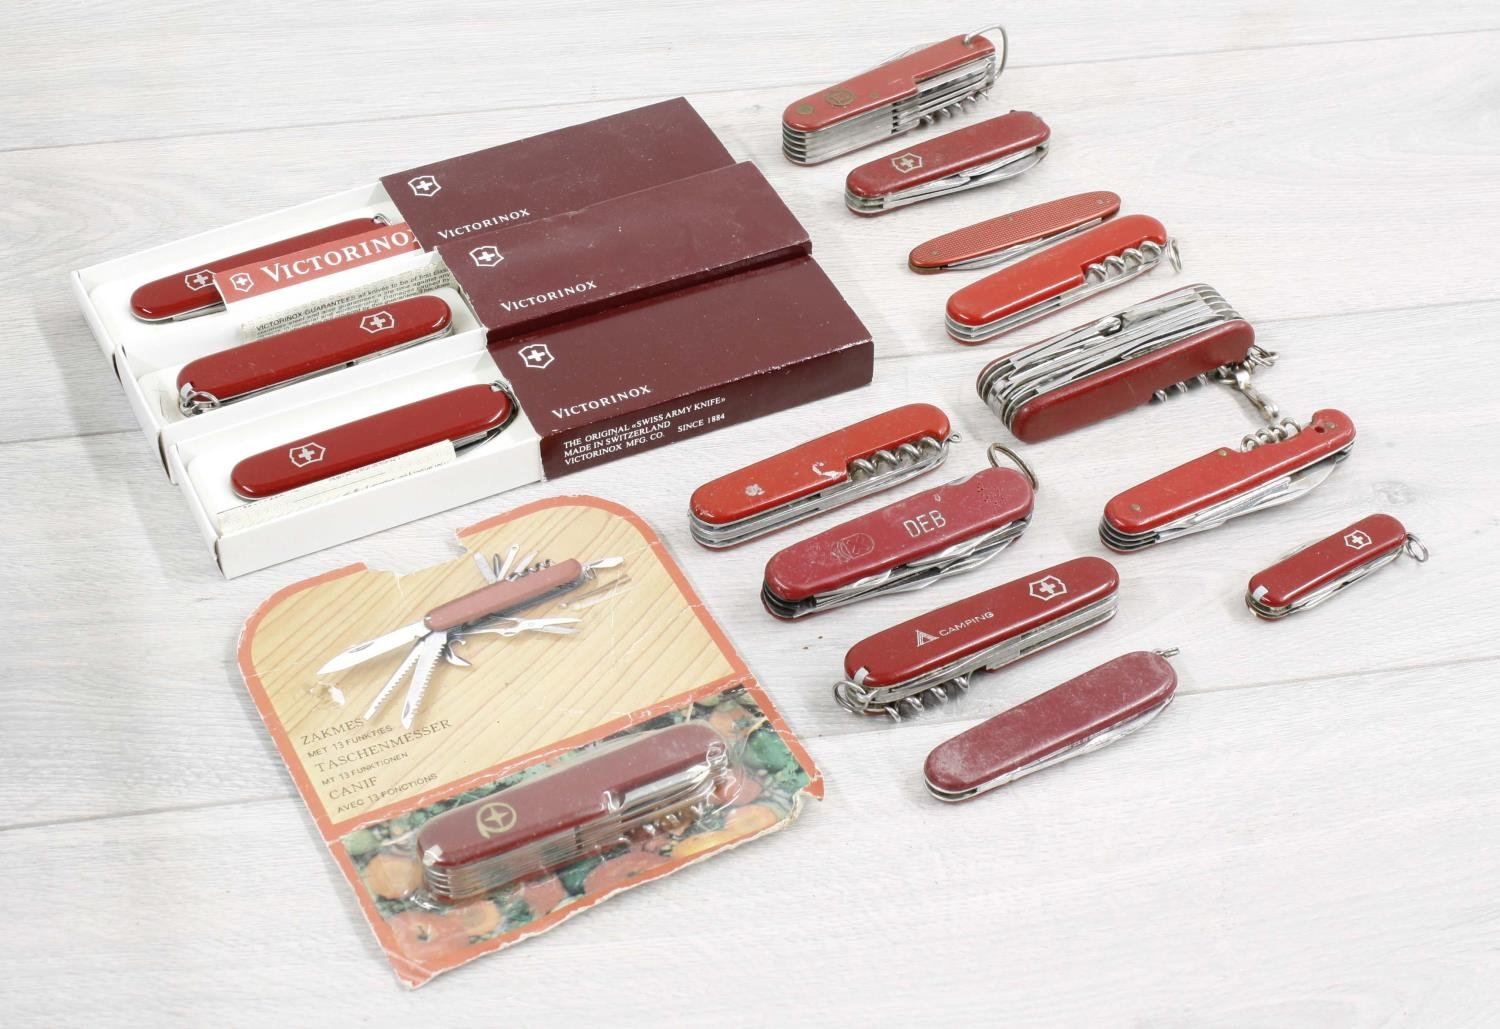 Collection of folding penknives including boxed Victorinox examplesand similar Swiss type penknives